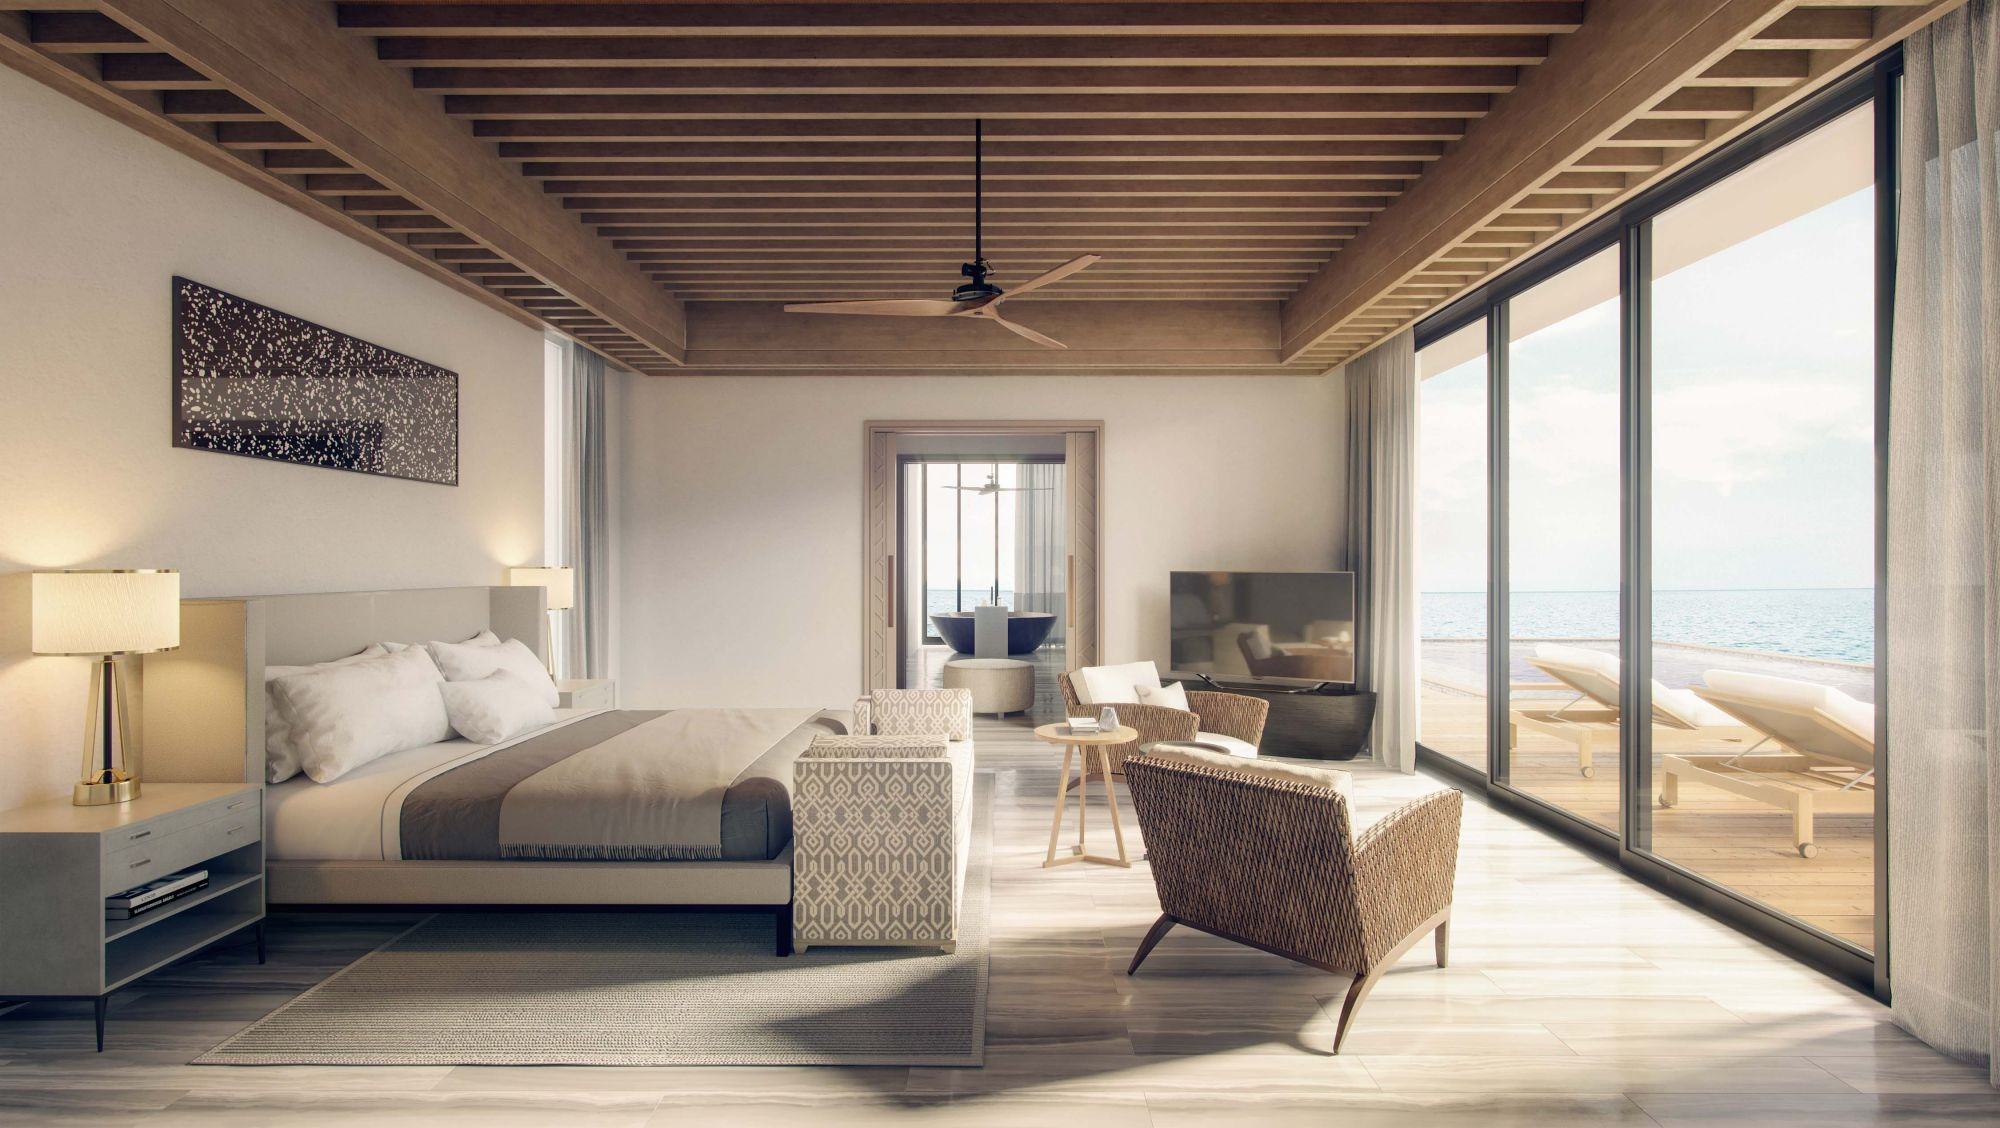 12 Luxury Hotel Openings To Note In 2019